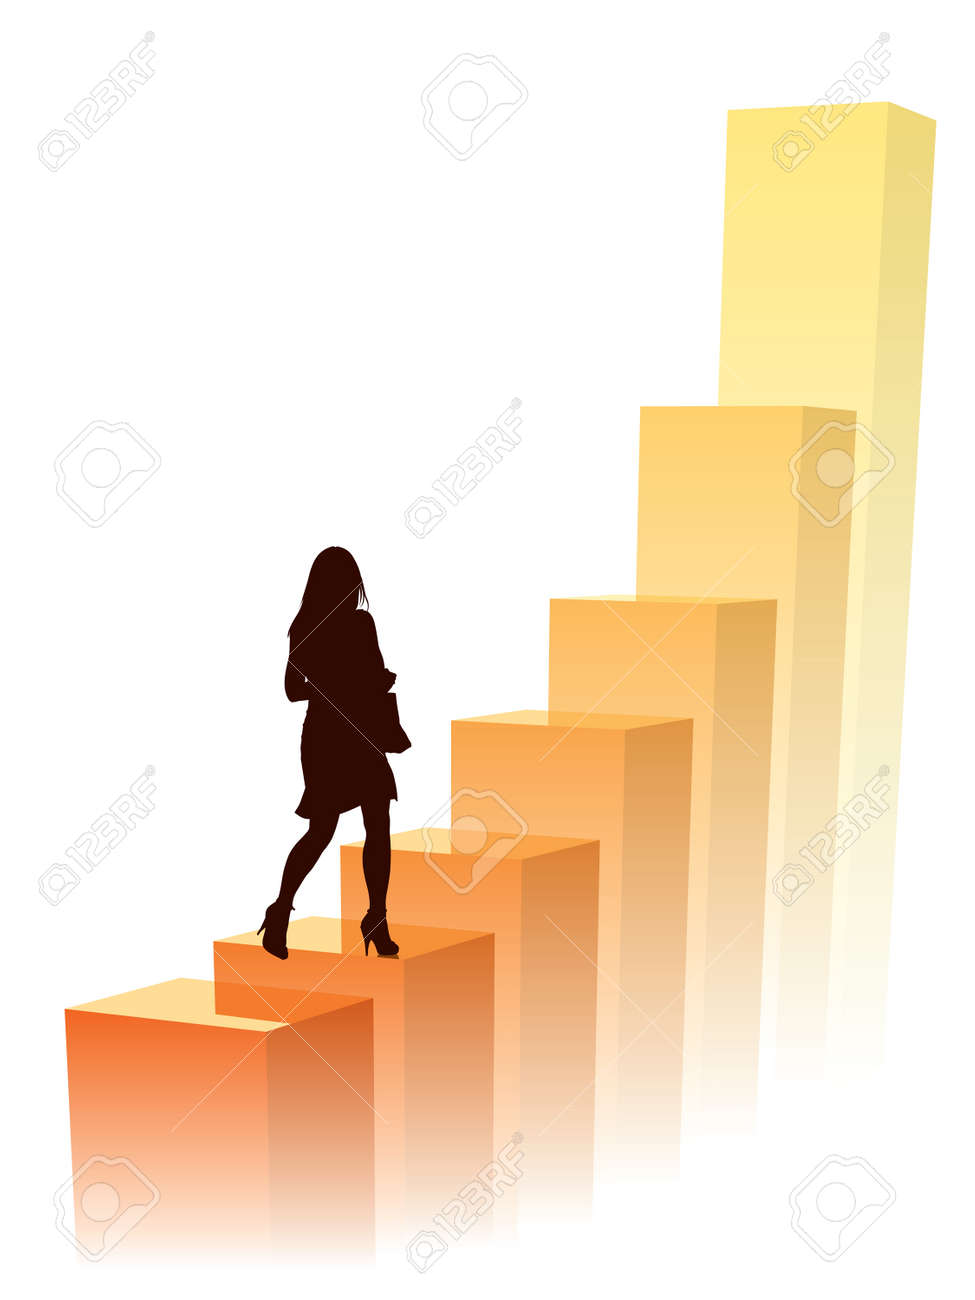 Businesswoman in a hurry, conceptual business illustration. Stock Vector - 3859559